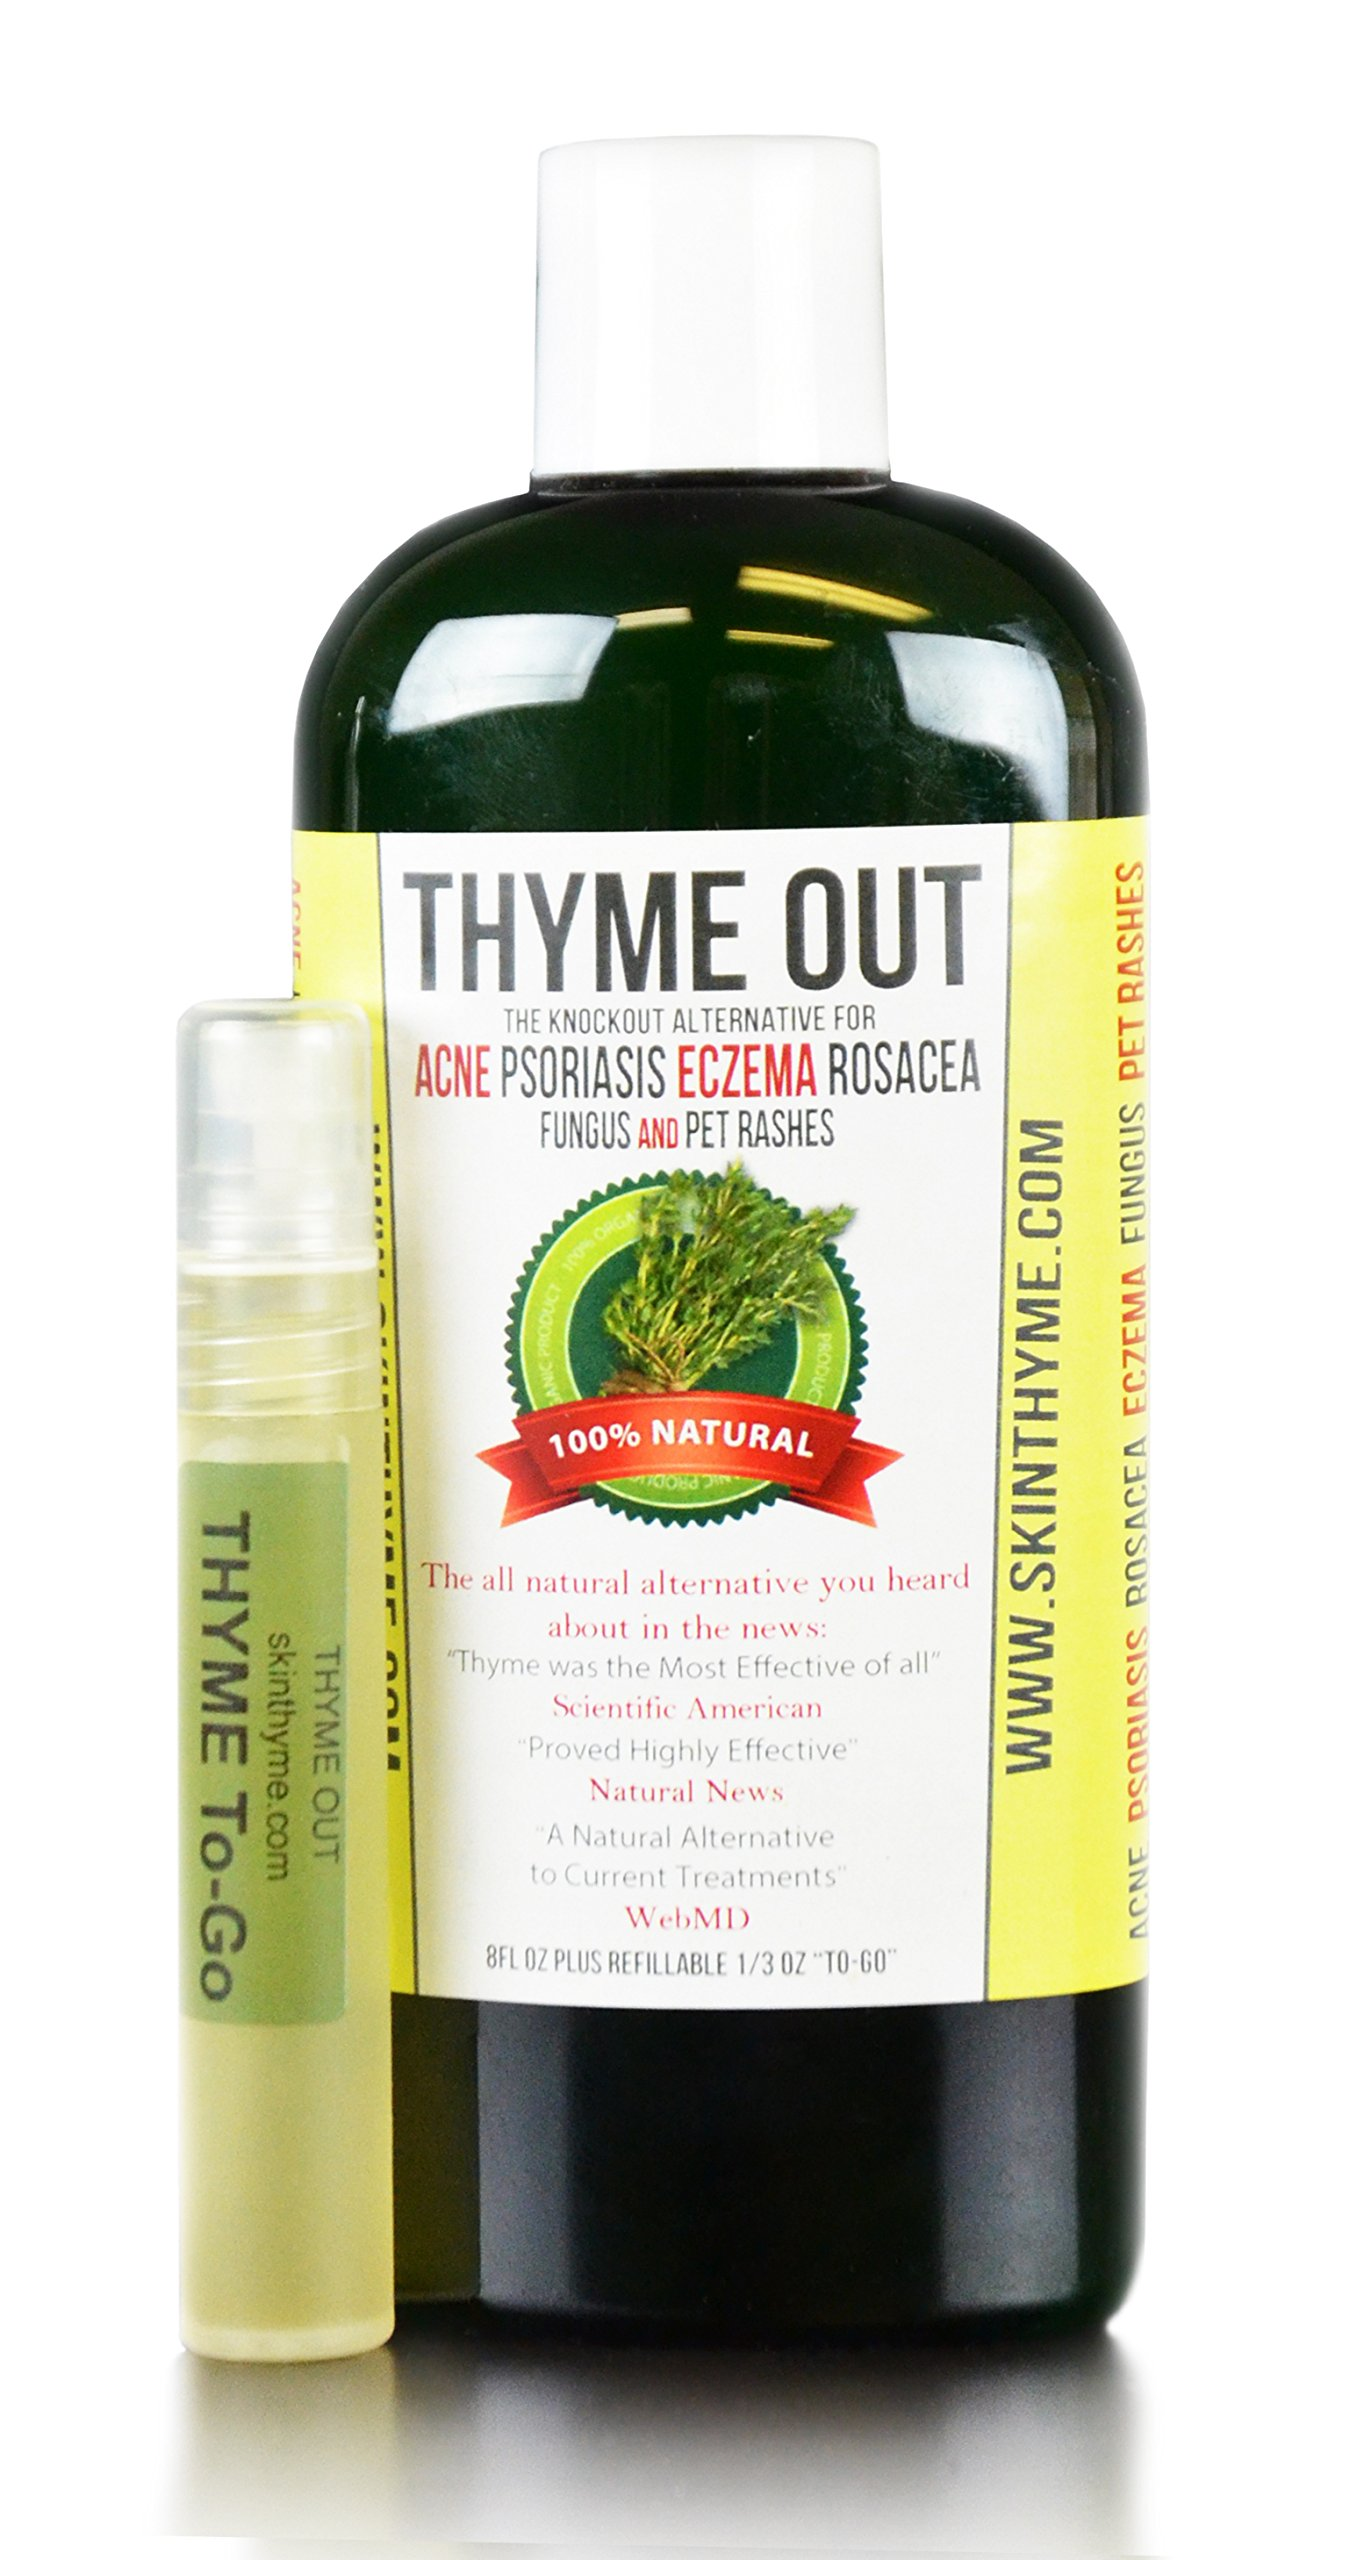 Thyme Out The Knockout Alternative For Eczema, Psoriasis, Acne, Dermatitis, Rosacea, Cold Sores, Pet Rashes, Bug Bites, Fungus, Poison Ivy, Any Skin Inflammation 1 8oz + 1/4oz ''To Go'' Bottle by Thyme Out (Image #1)